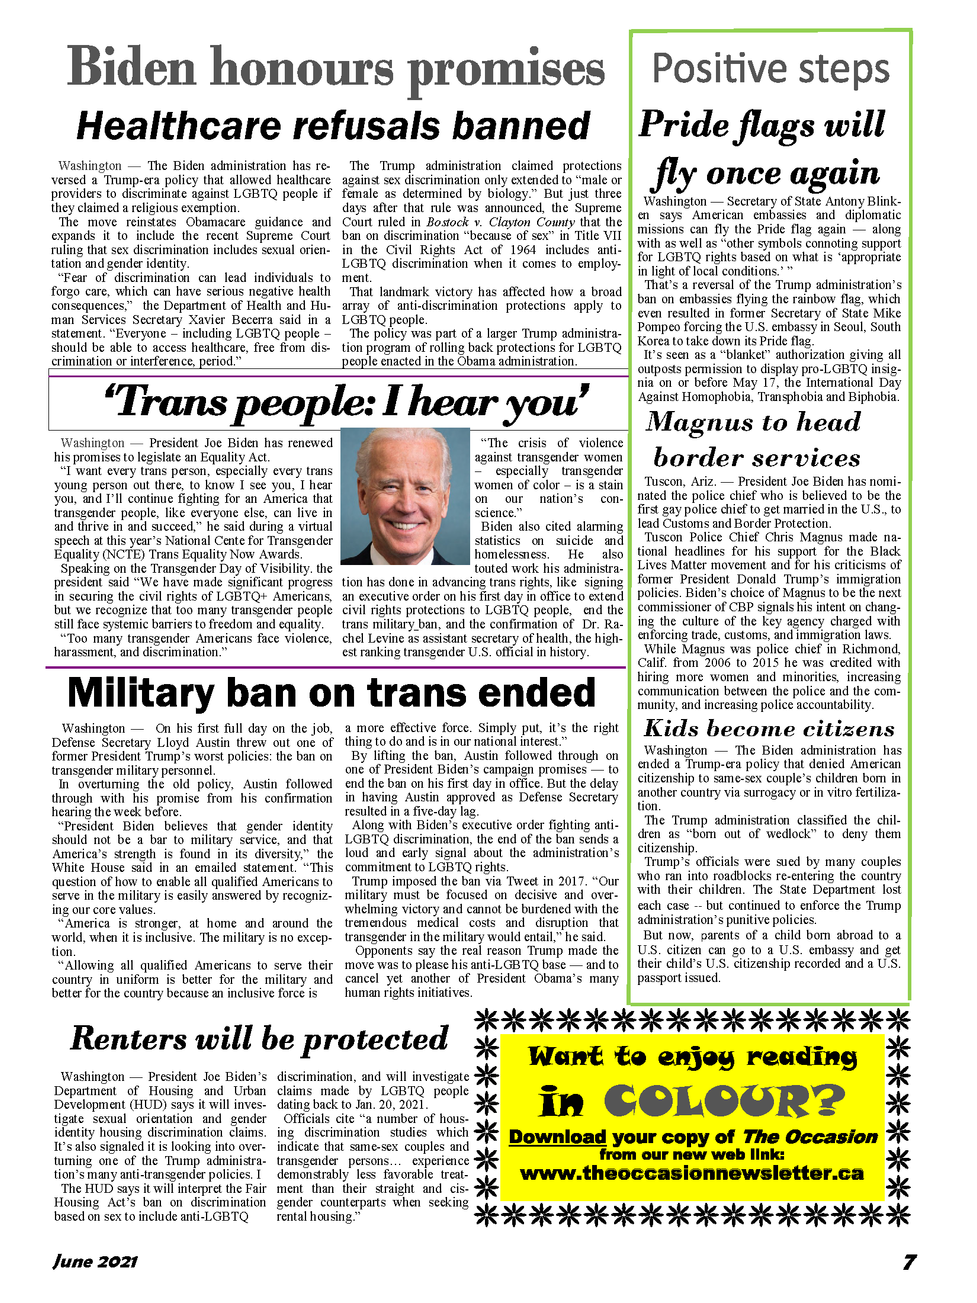 Occ June 2021p2 (1)_Page_7.png